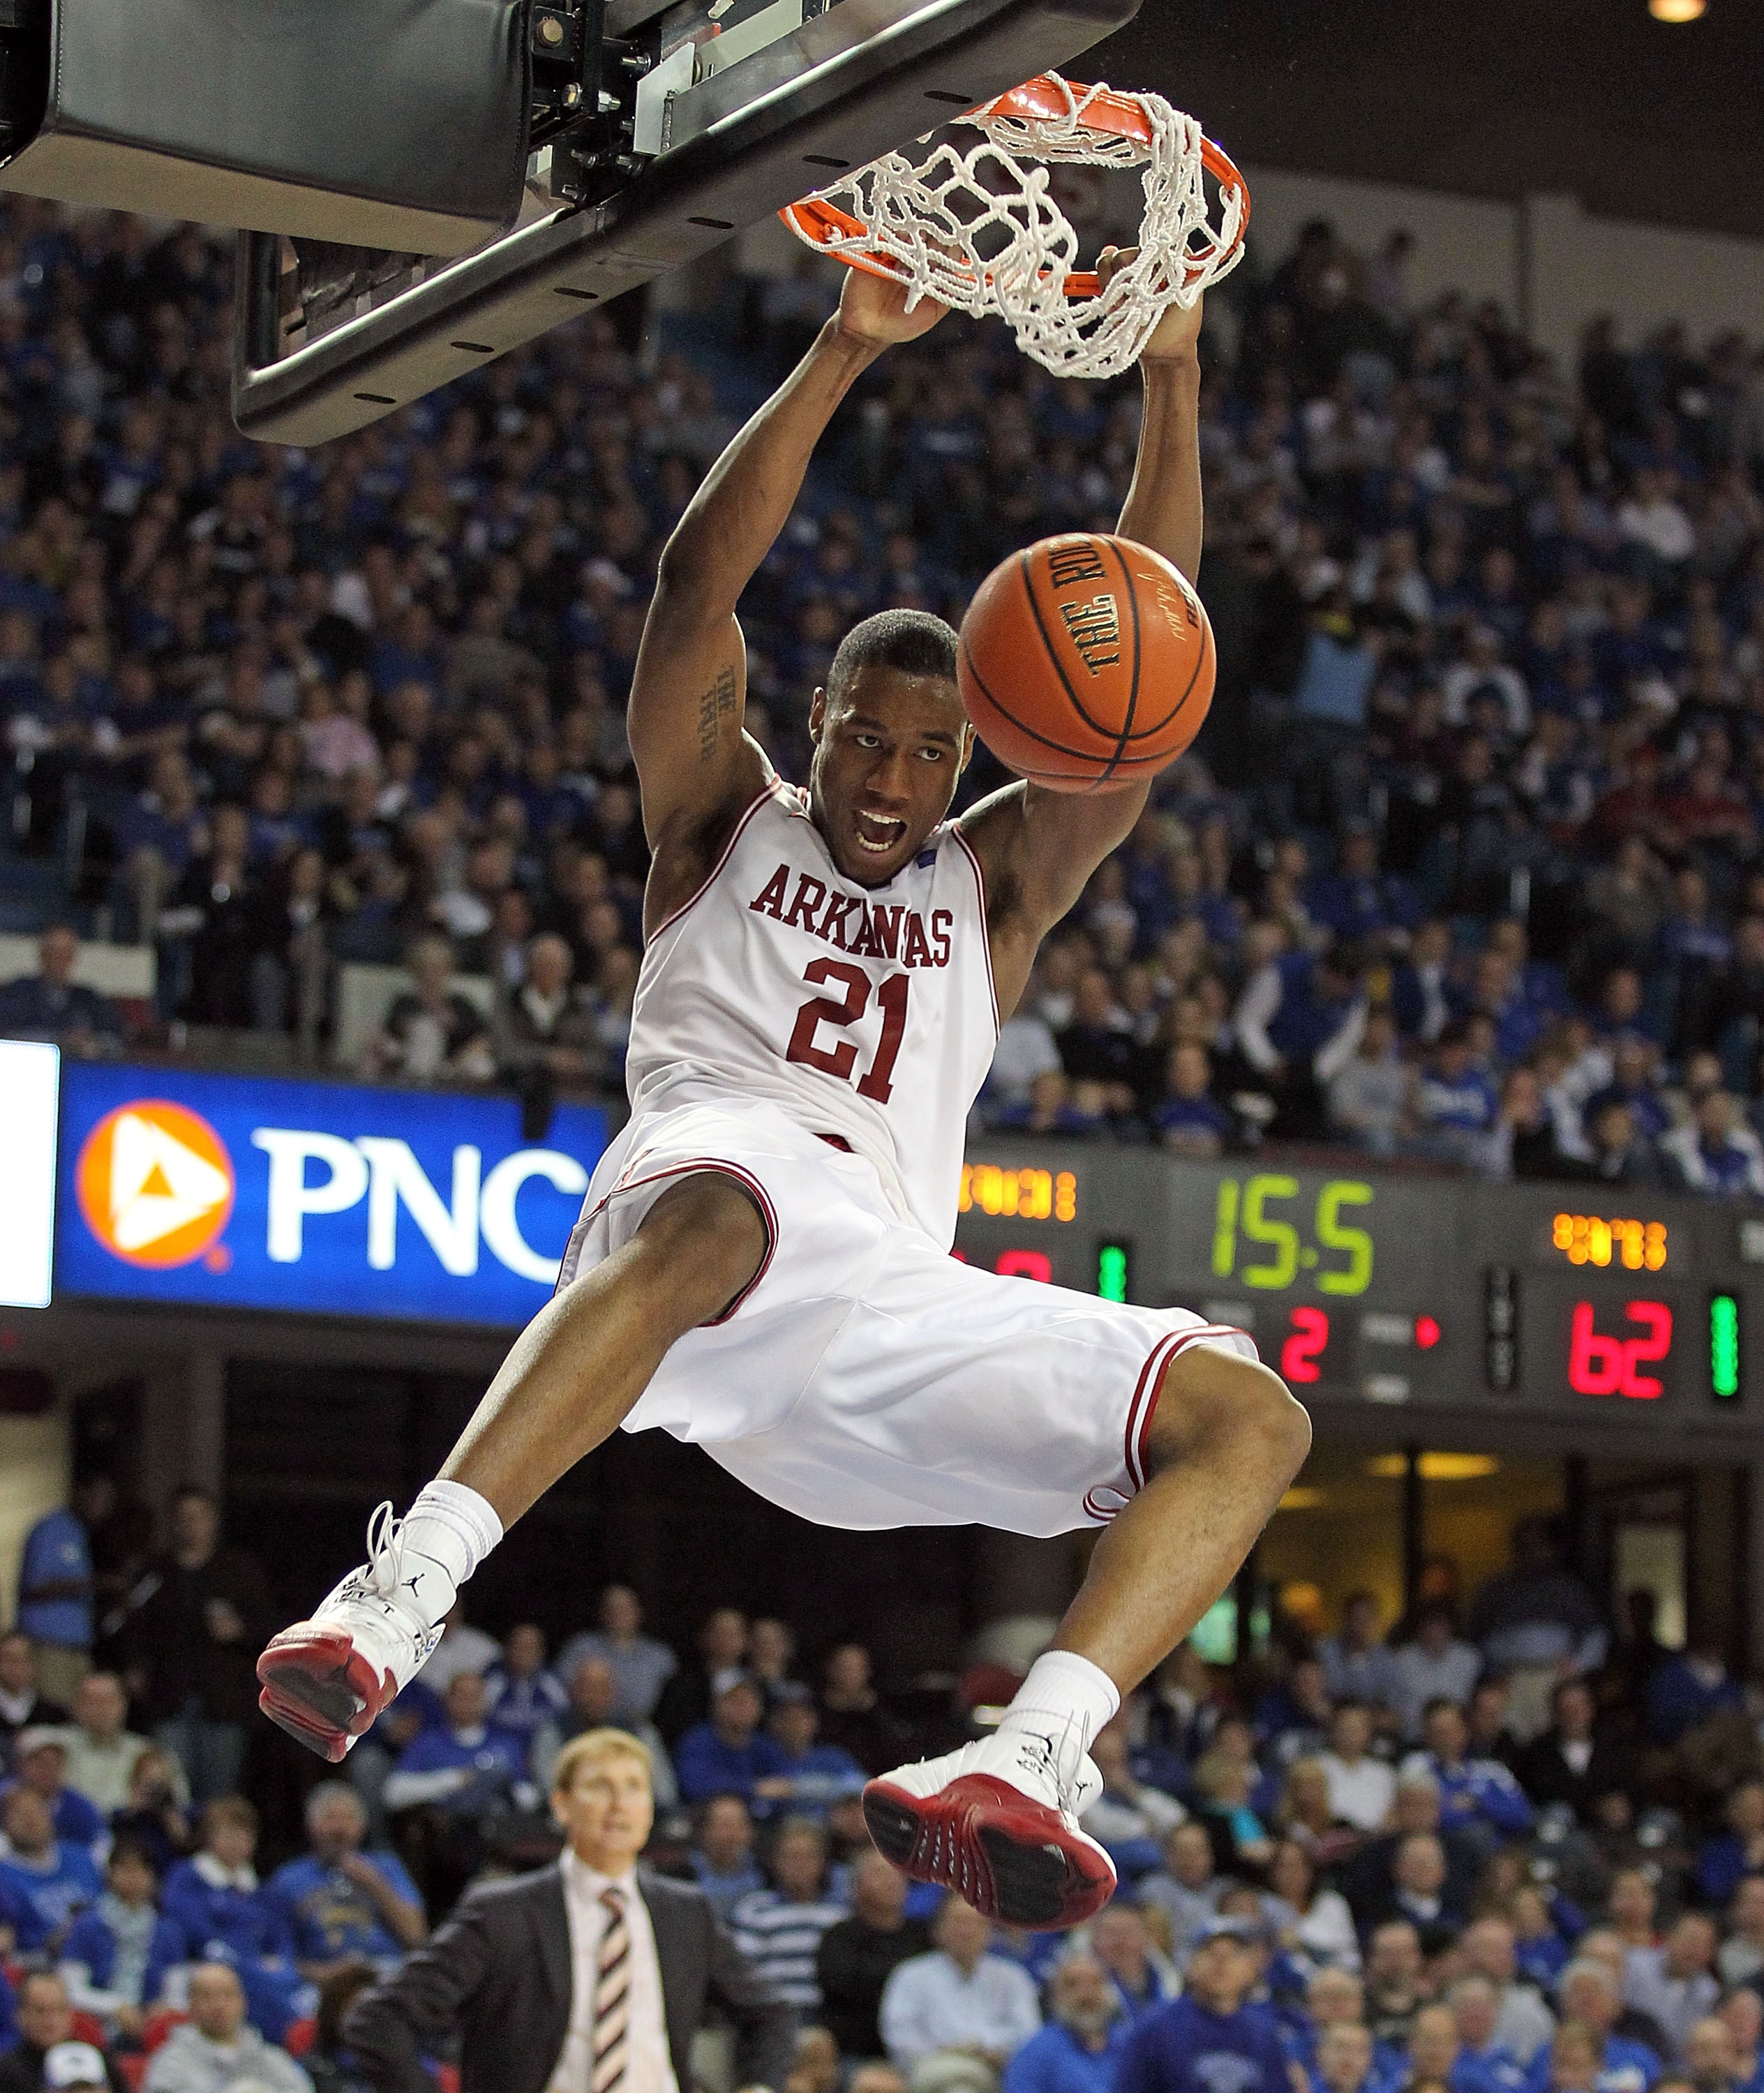 LOUISVILLE, KY - DECEMBER 08:  Delvon Johnson #21 of the Arkansas Razorbacks dunks the ball during the game against the Seton Hall Pirates in the 2010 DIRECTV SEC/BIG EAST Invitational at Freedom Hall on December 8, 2010 in Louisville, Kentucky.  (Photo b